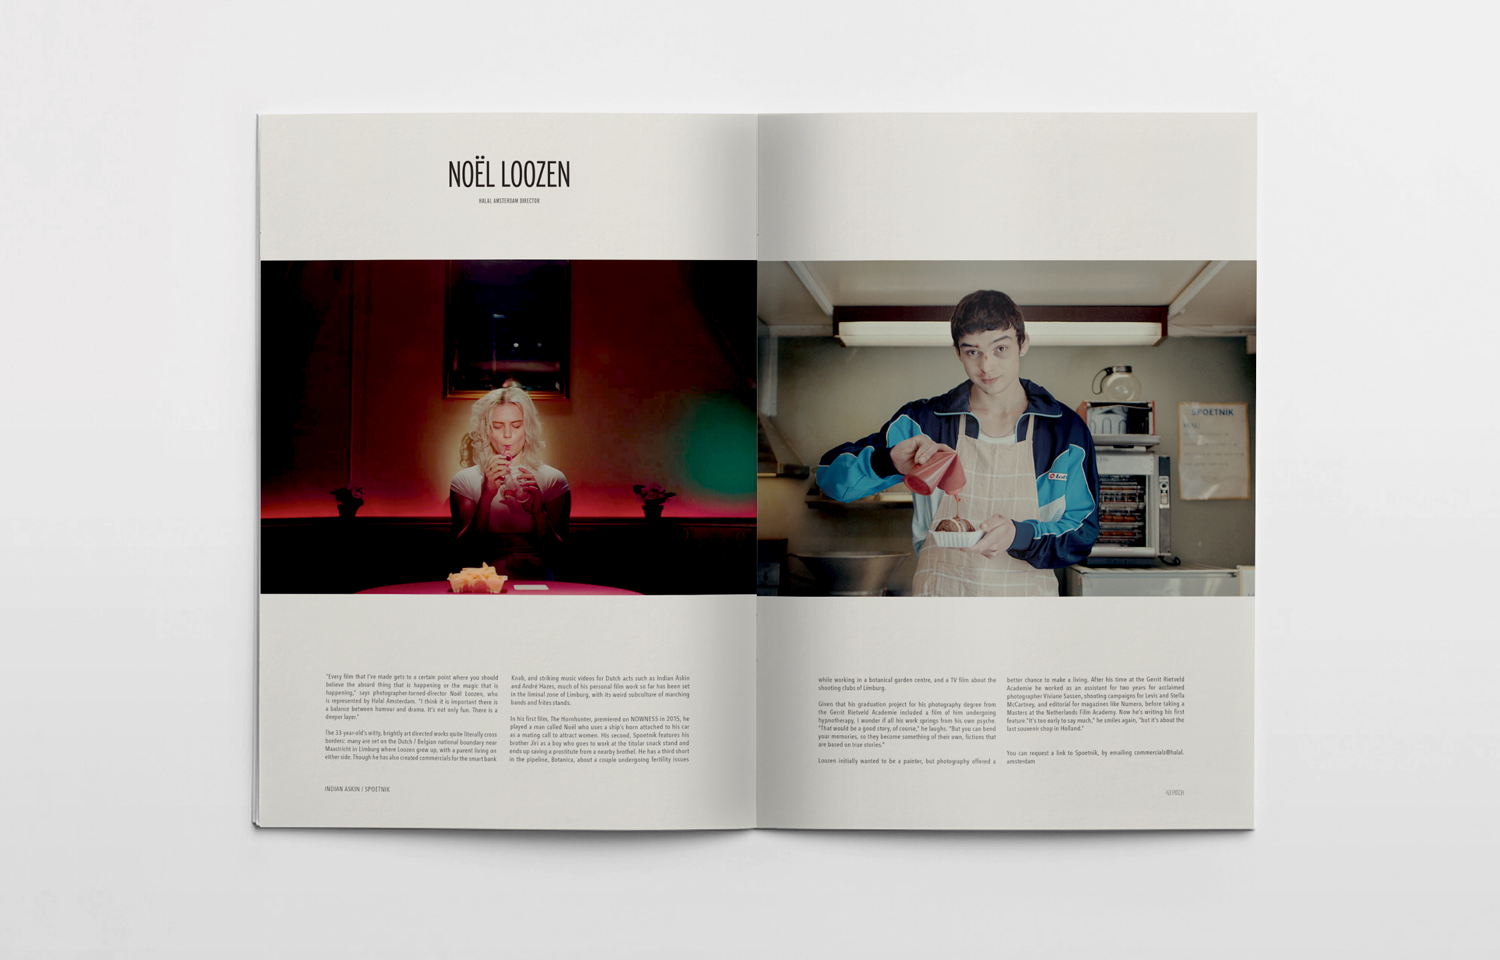 Editorial design for Pitch featuring the work of Halal Amsterdam director, Noël Loozen.